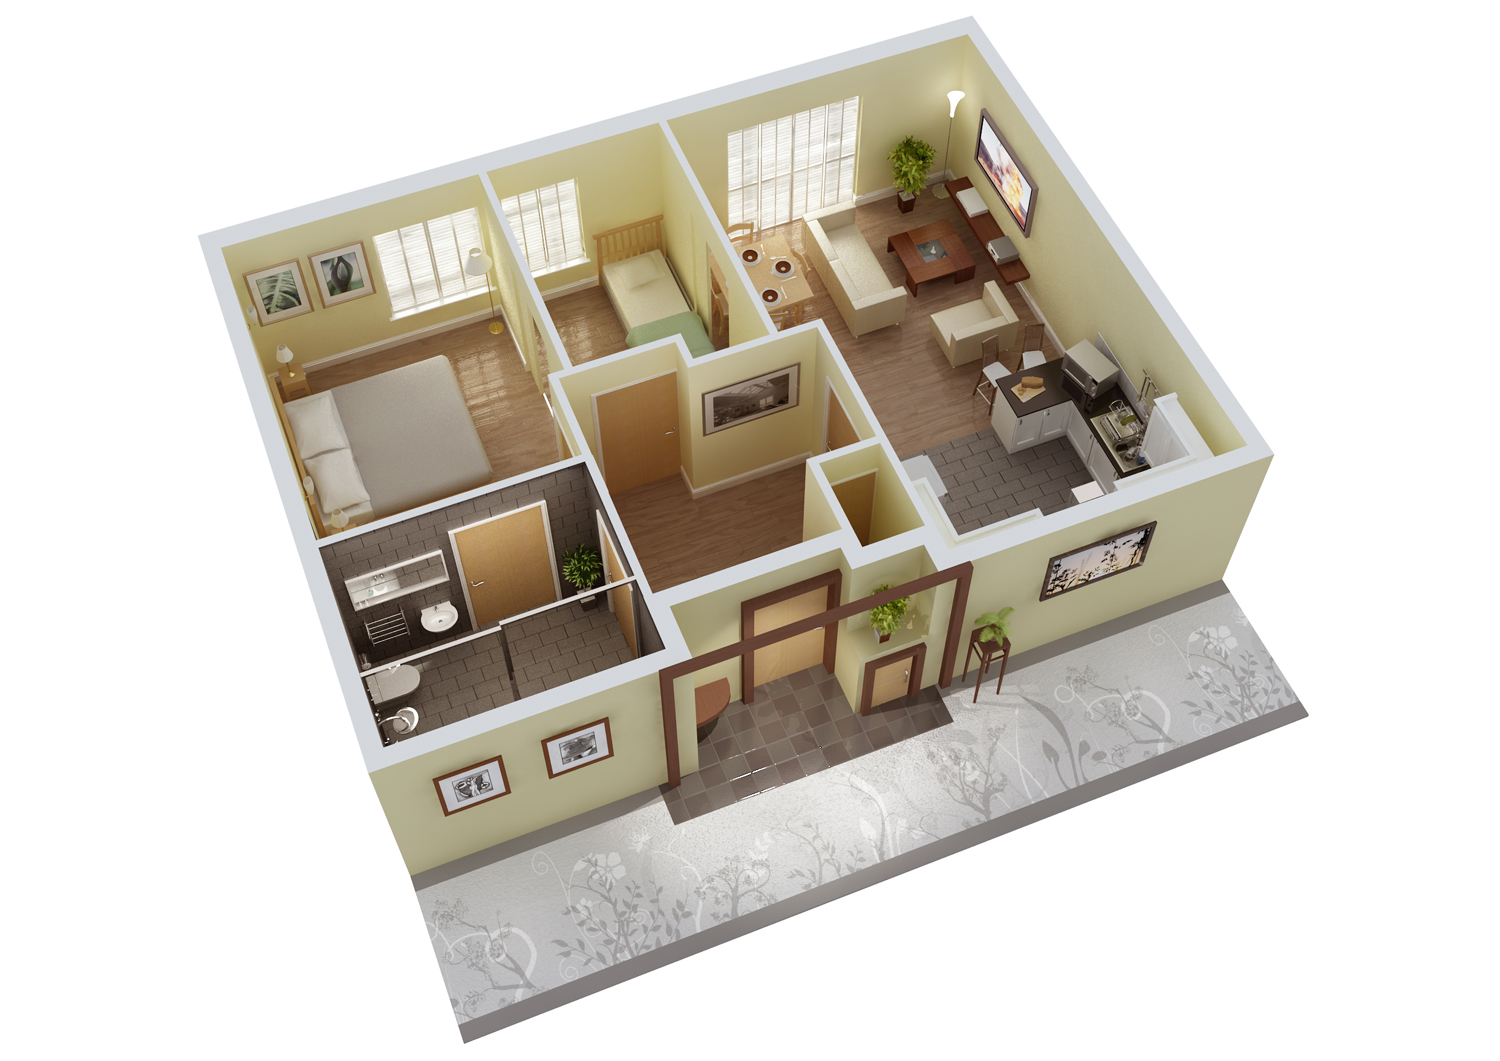 Mathematics resources project 3d floor plan for Home plan 3d